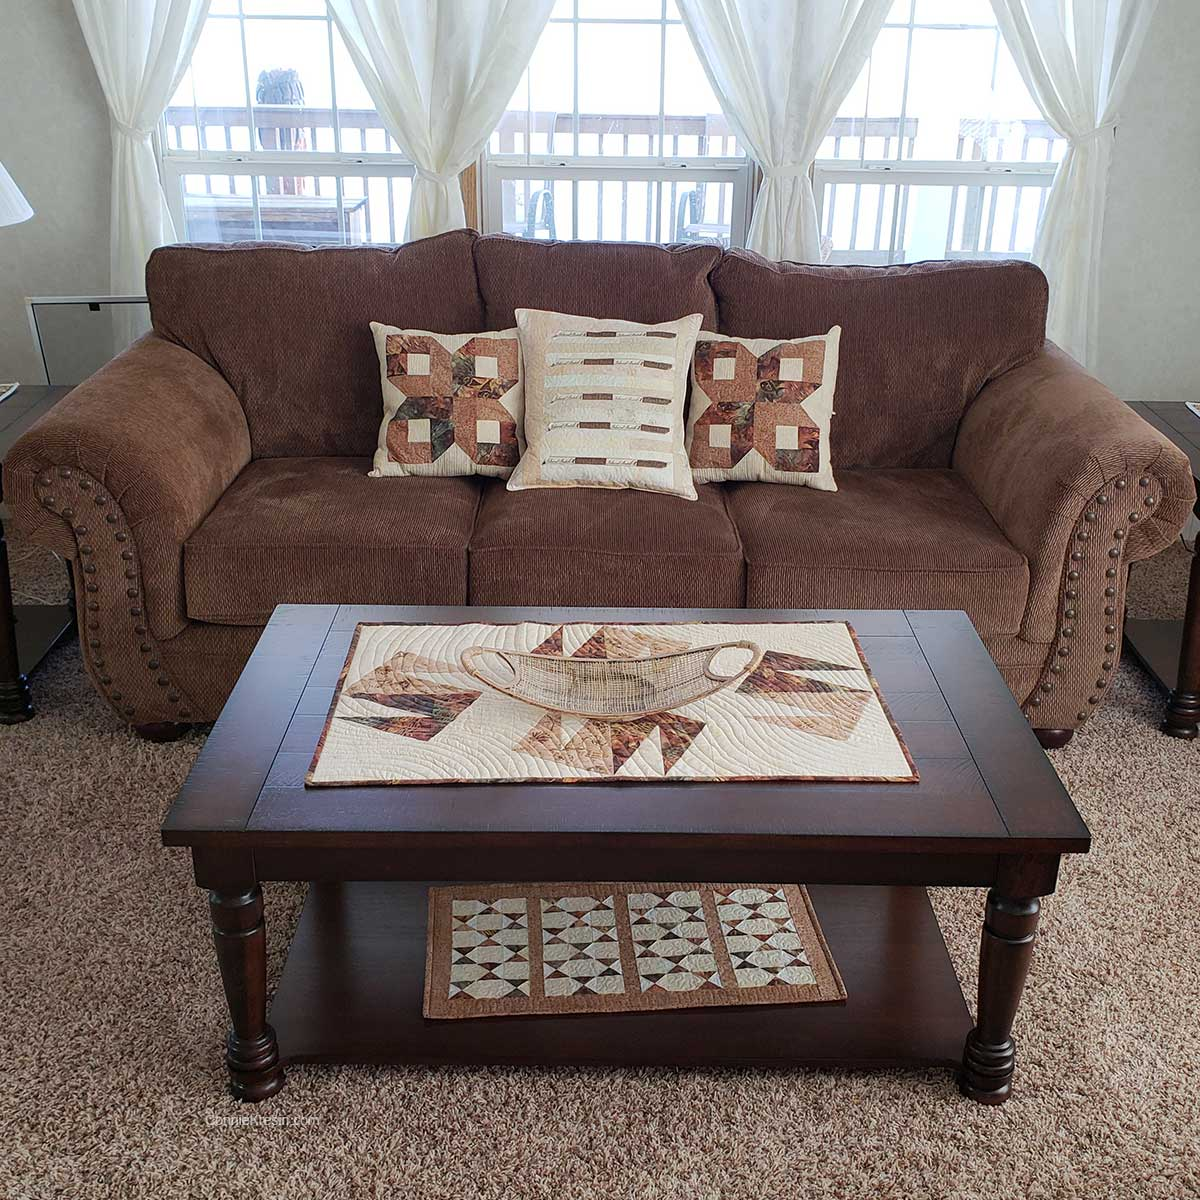 Quilted pillows on couch with table runner on table